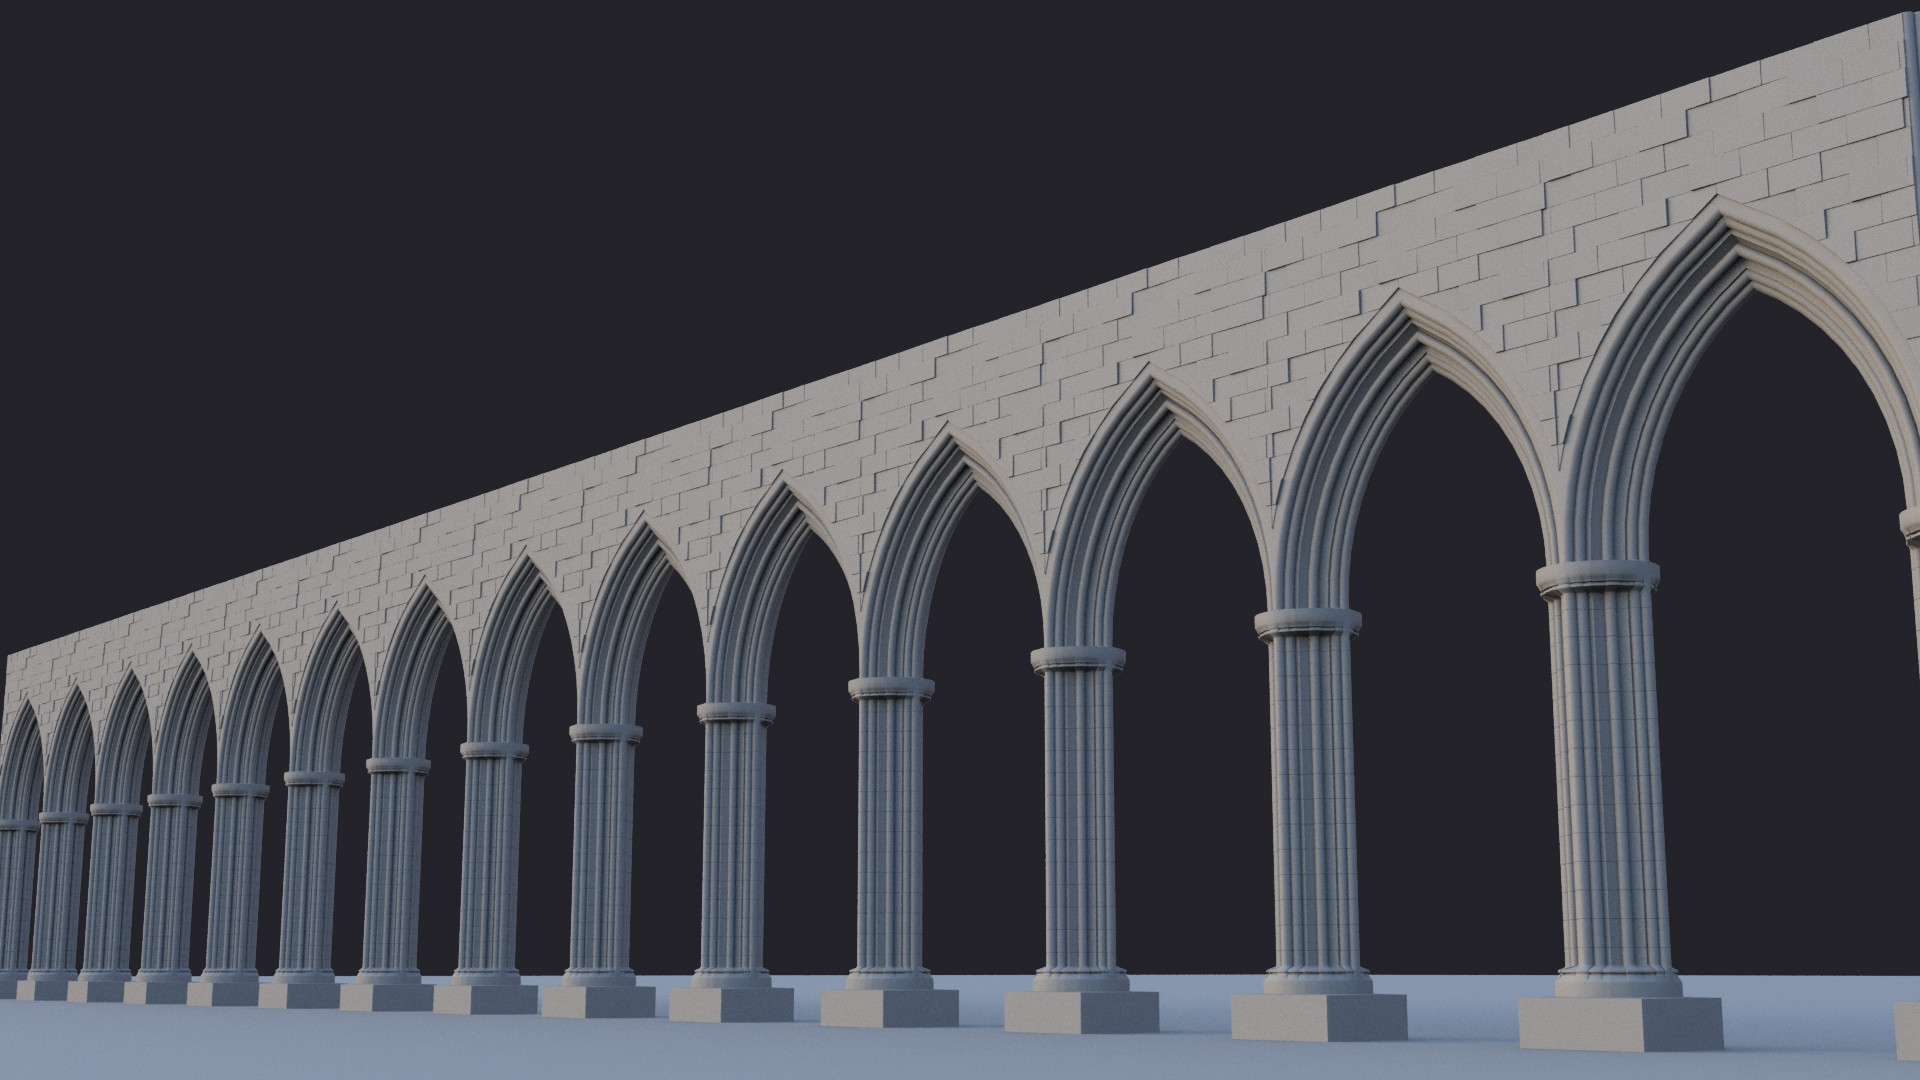 The first step in creating the scene, some basic pillars with a bunch of bricks.